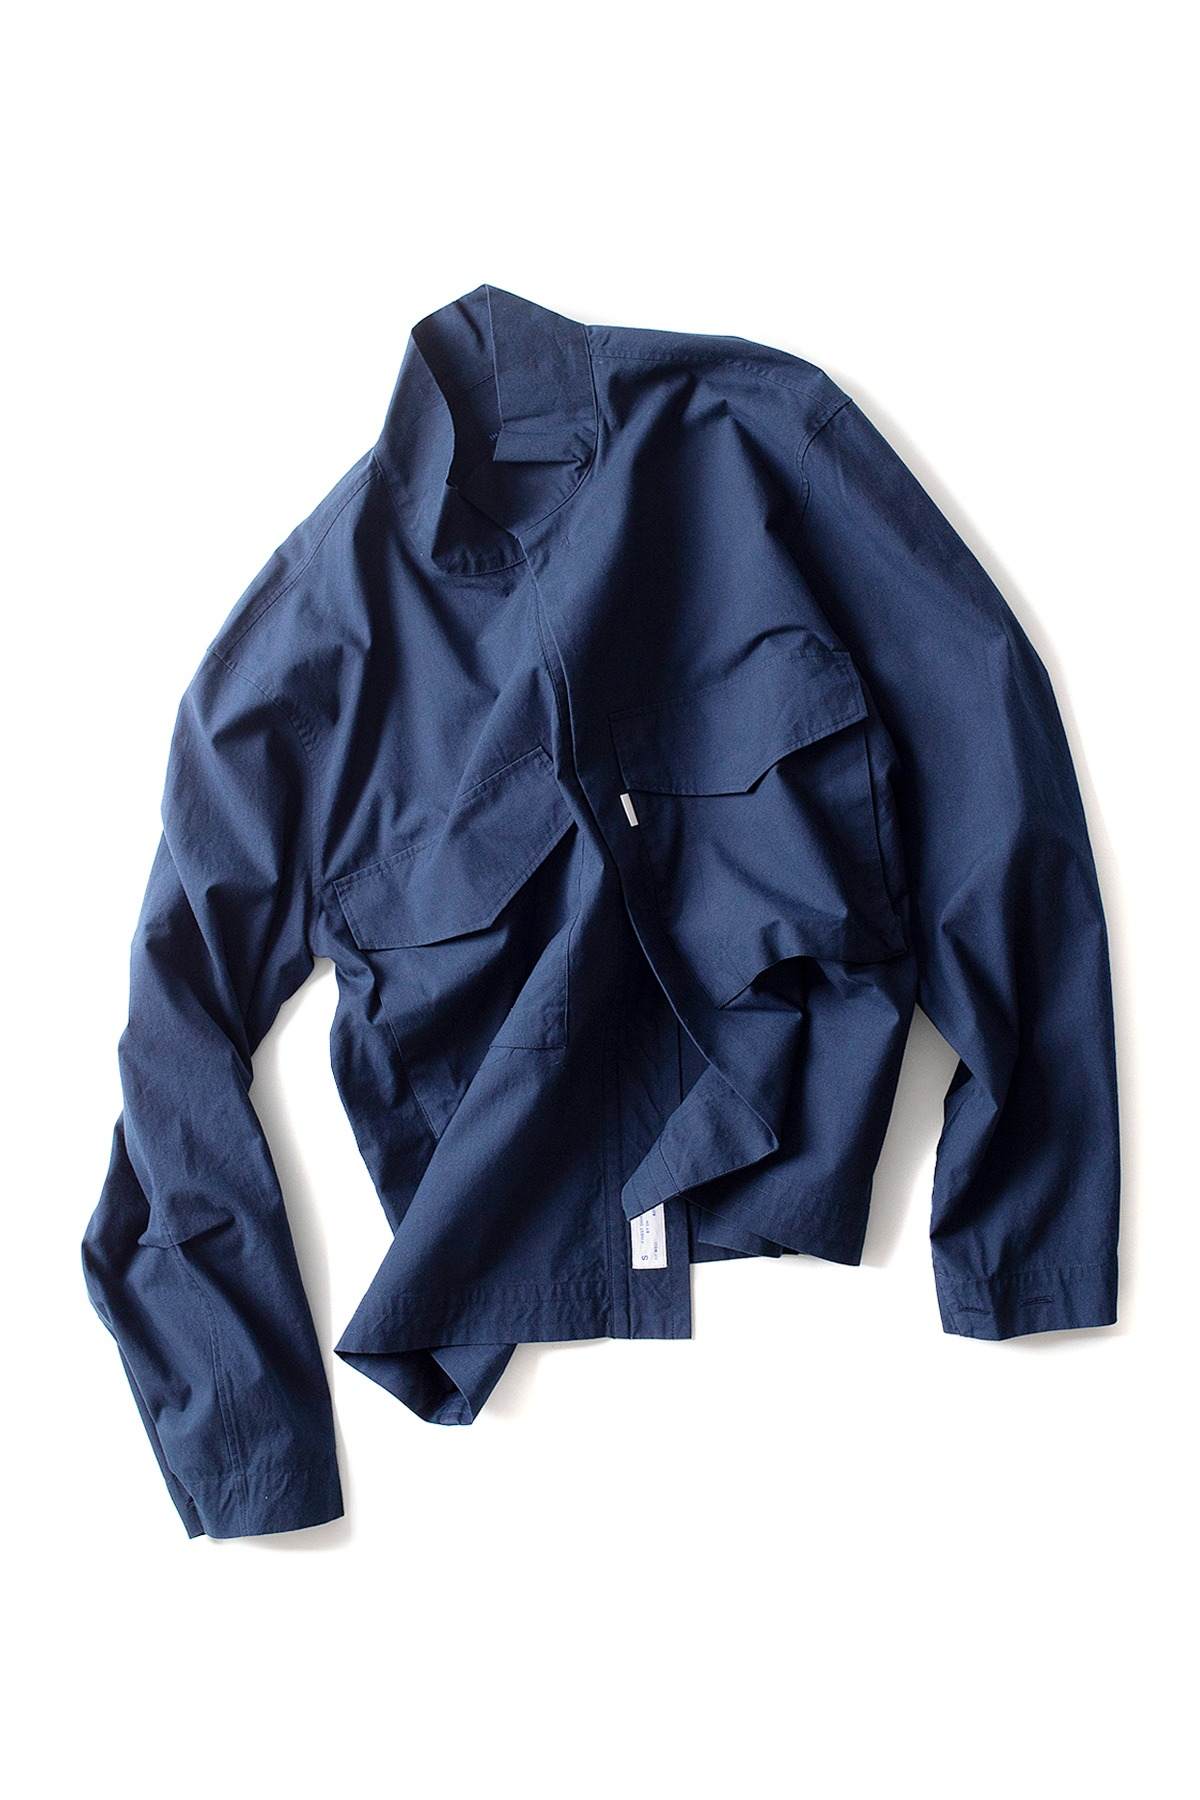 S H : Flight Shirt (Navy)